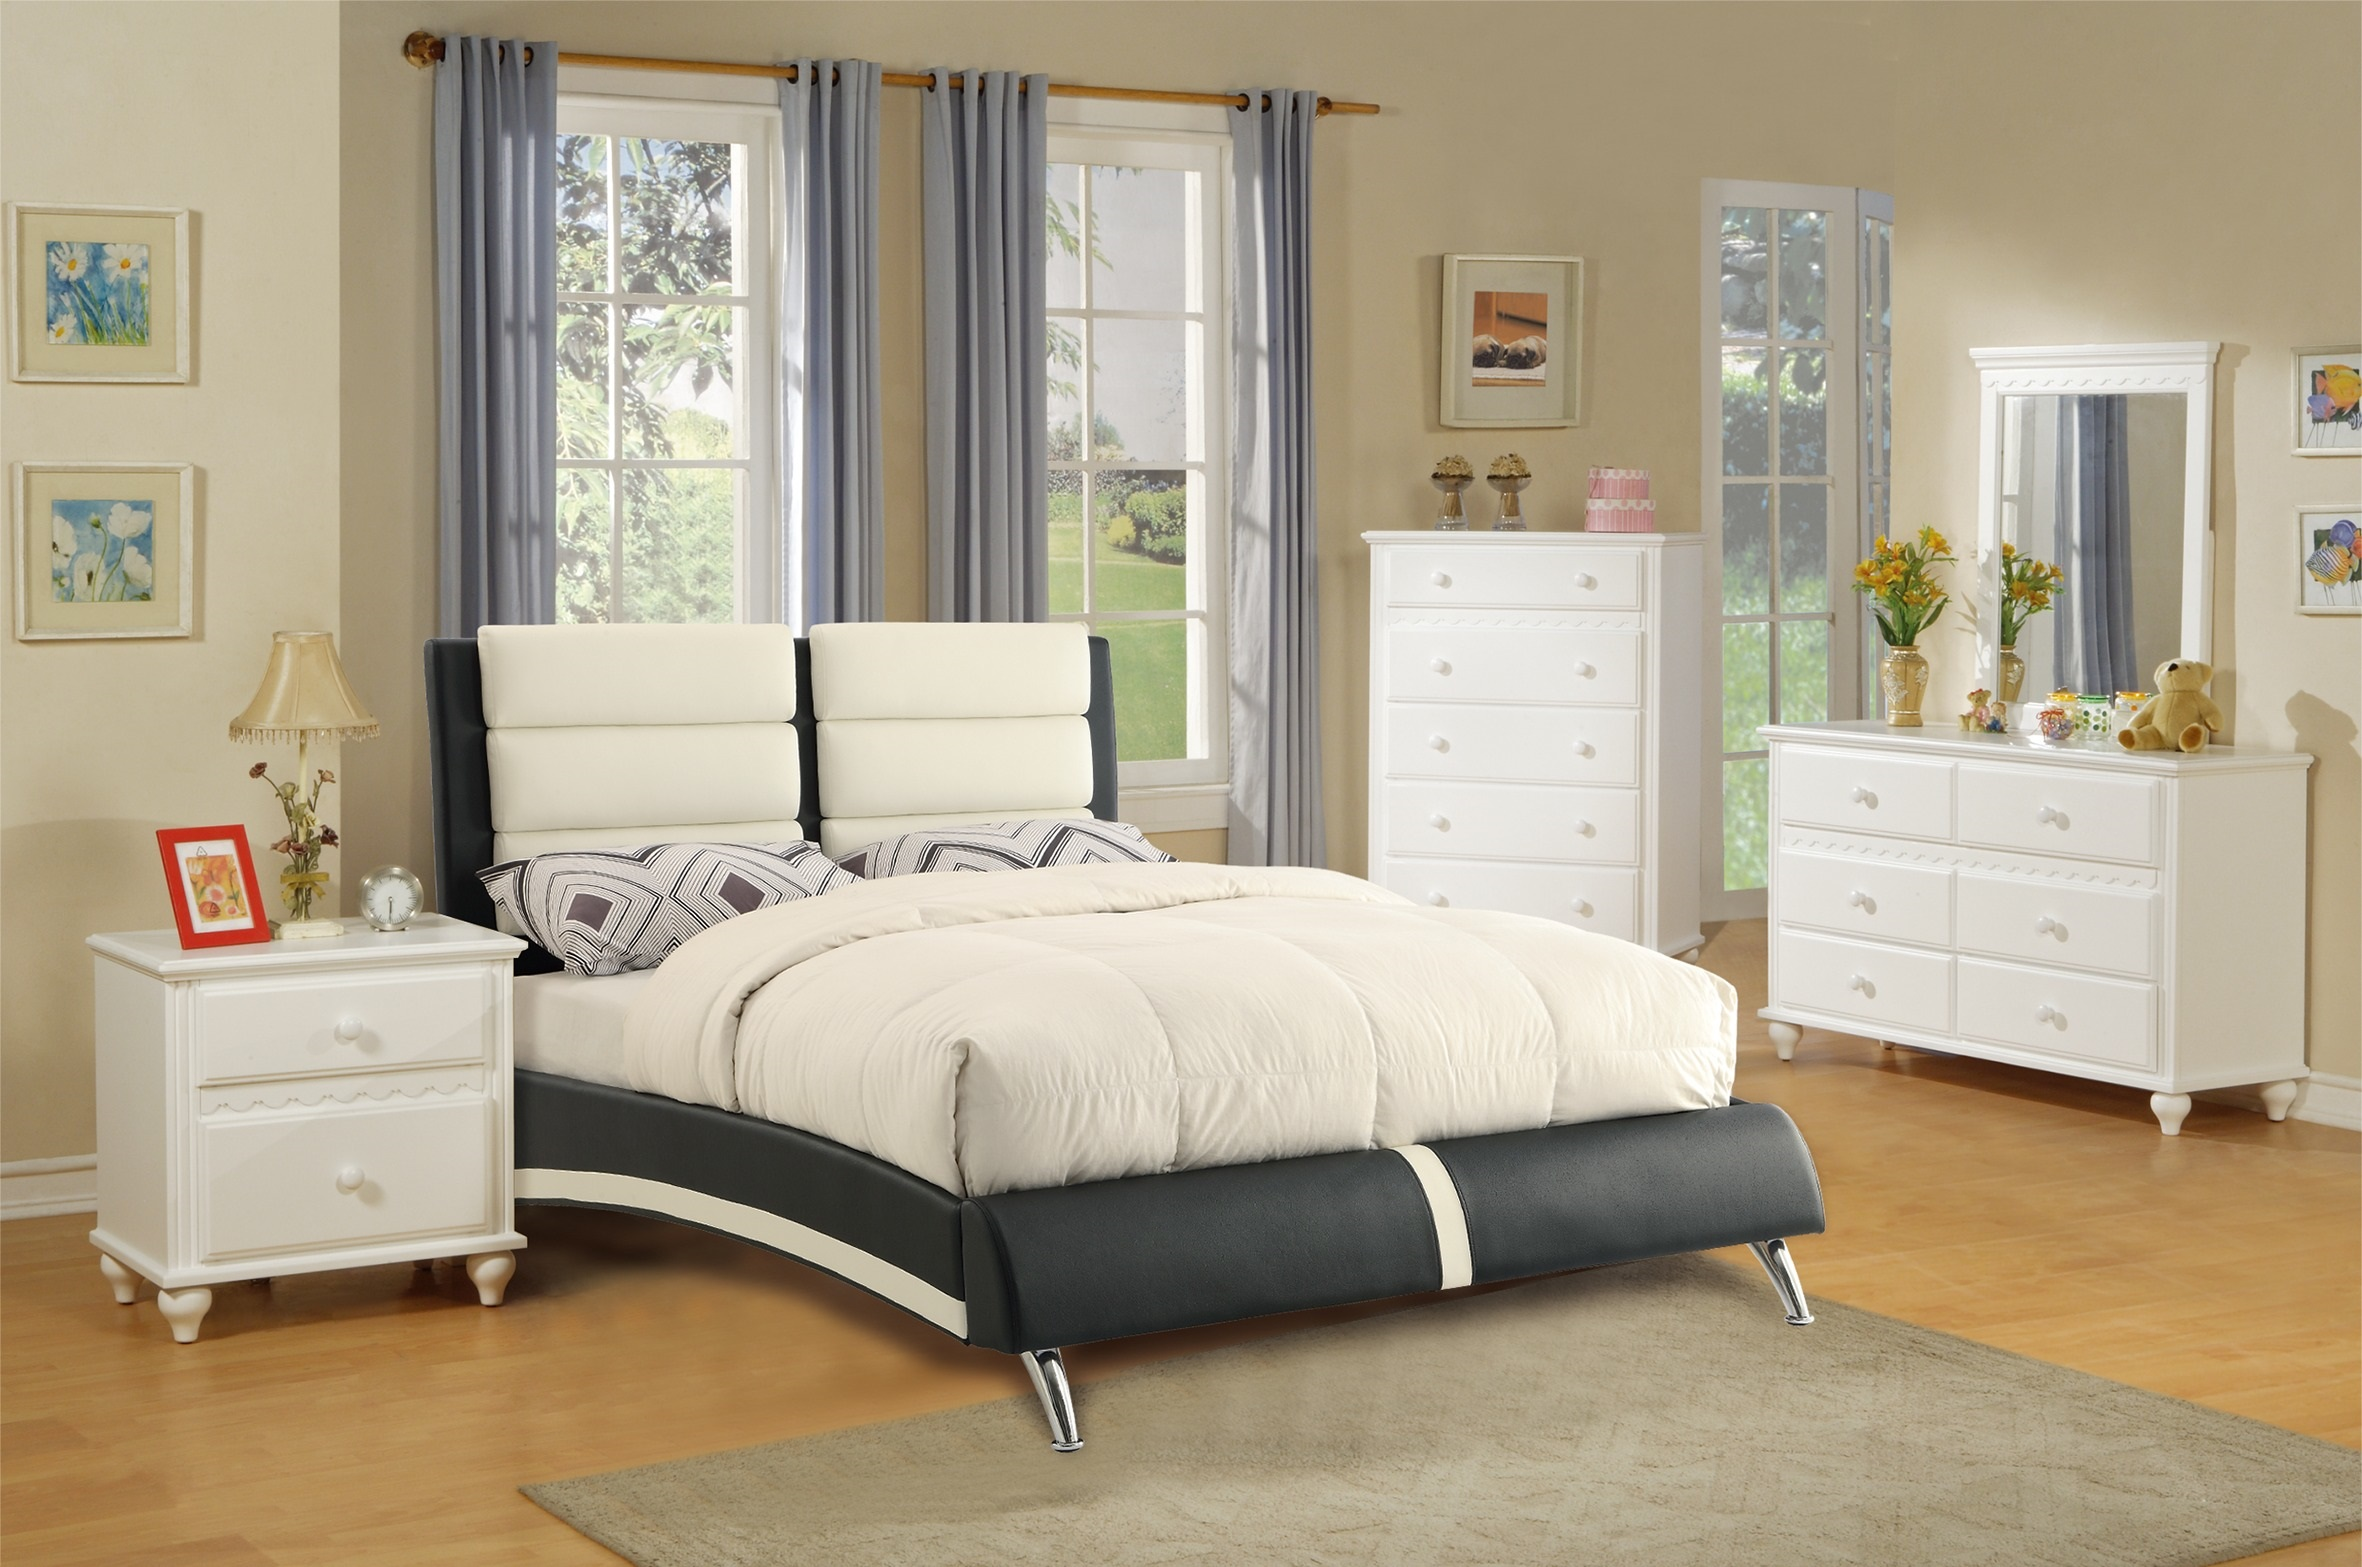 Black White Faux leather Bedroom Furniture 4pc Queen Bed Dresser Bedroom  Set Nightstand Mirror